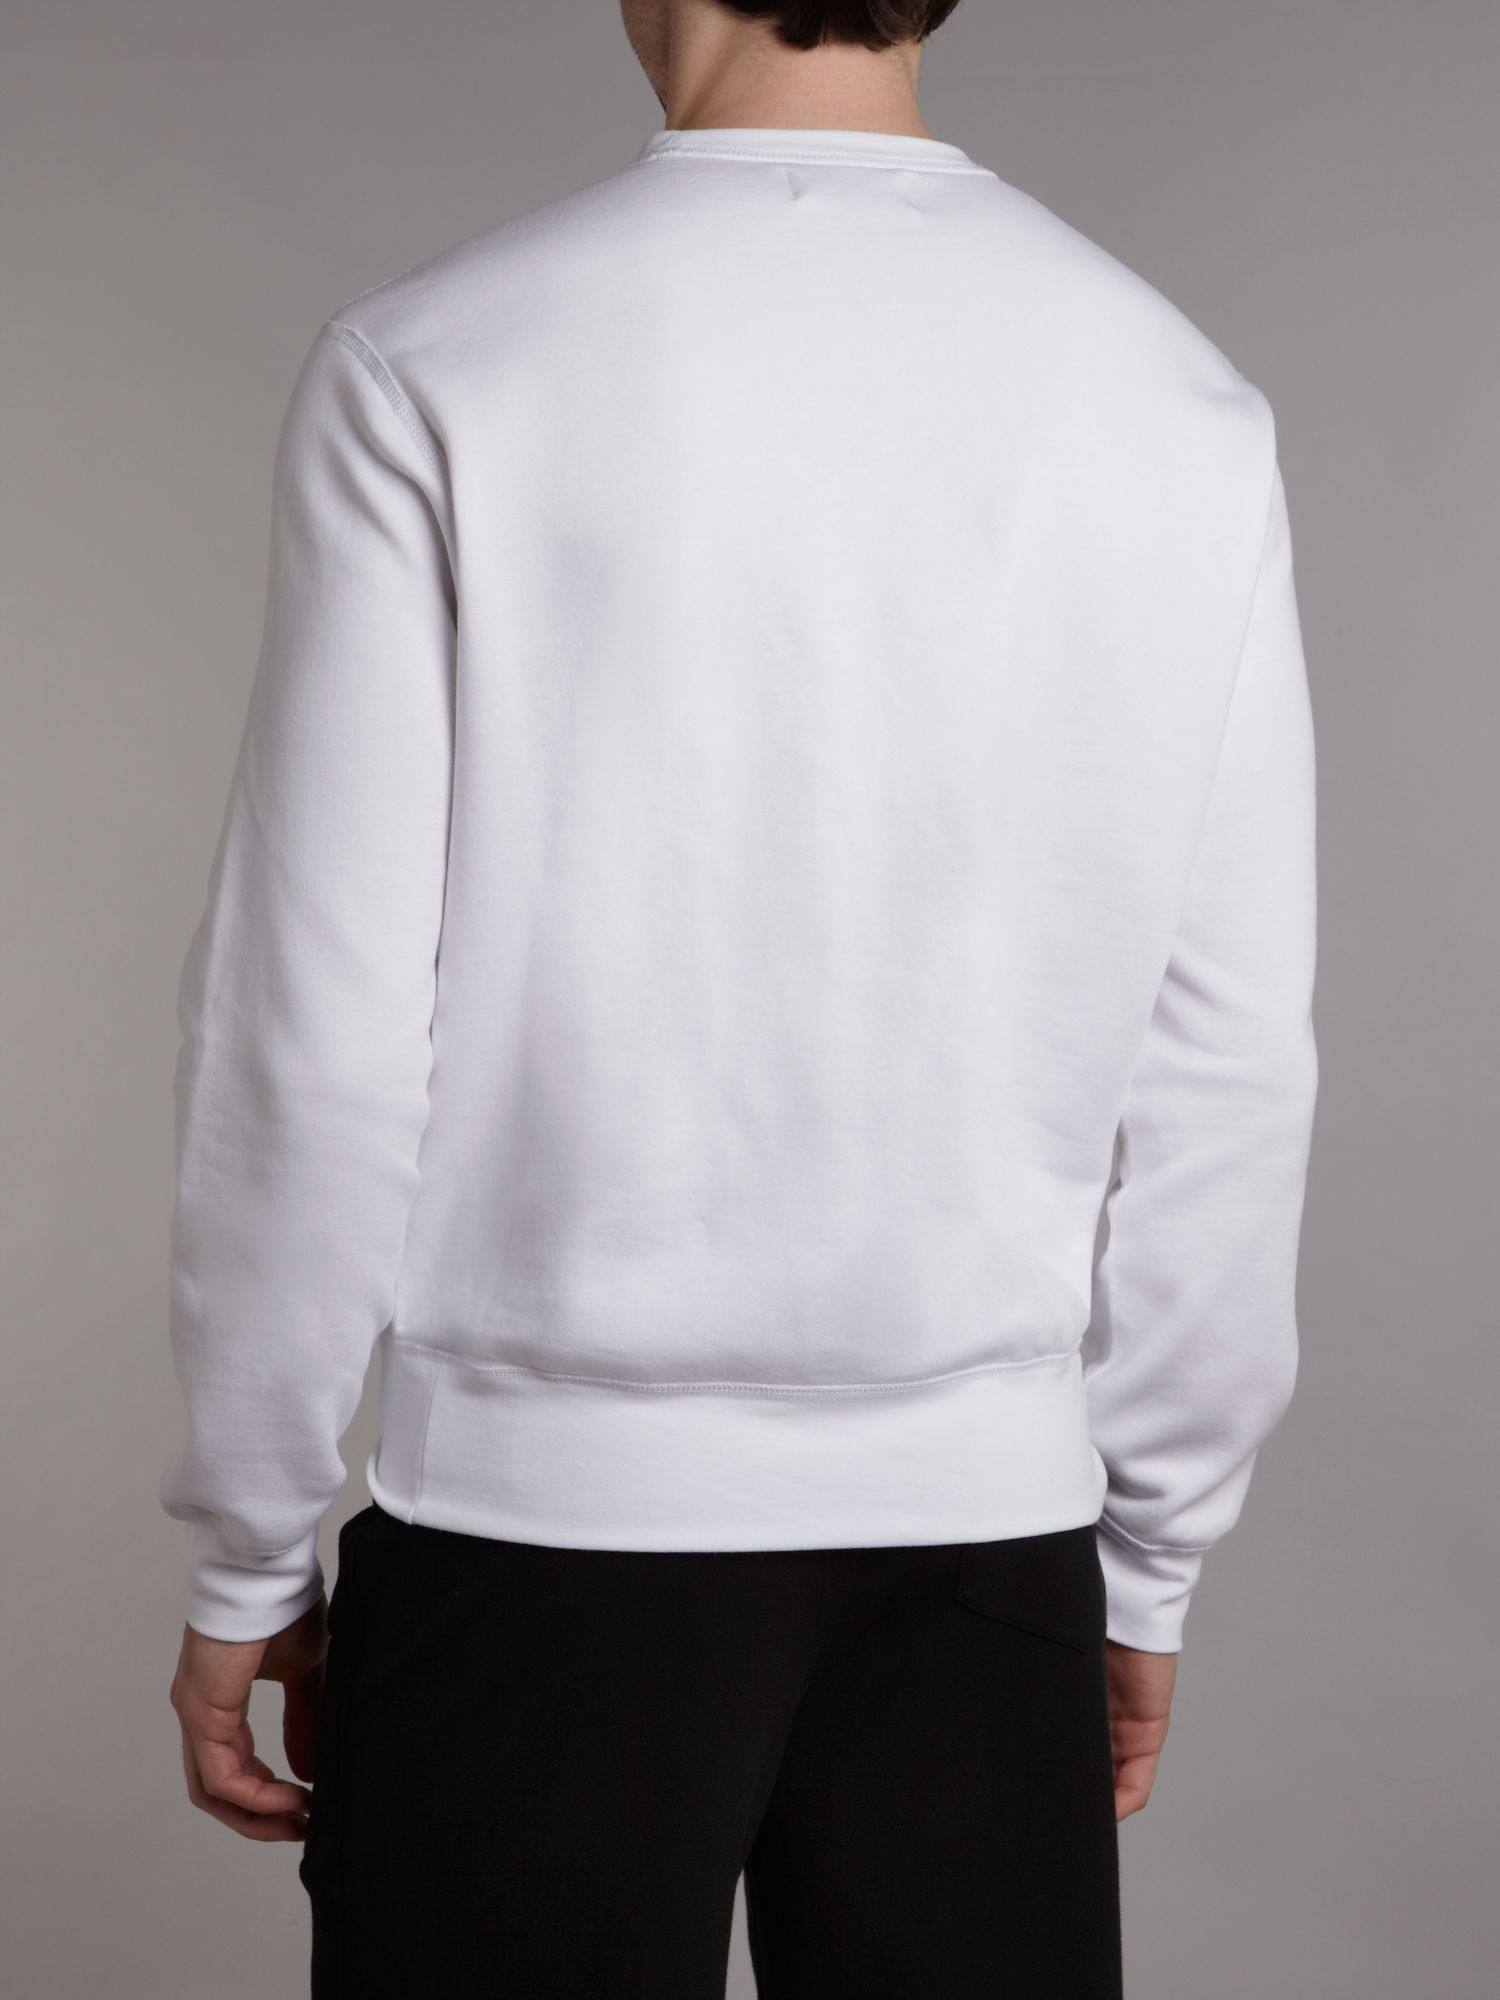 Shop for white crew neck sweater online at Target. Free shipping on purchases over $35 and save 5% every day with your Target REDcard.